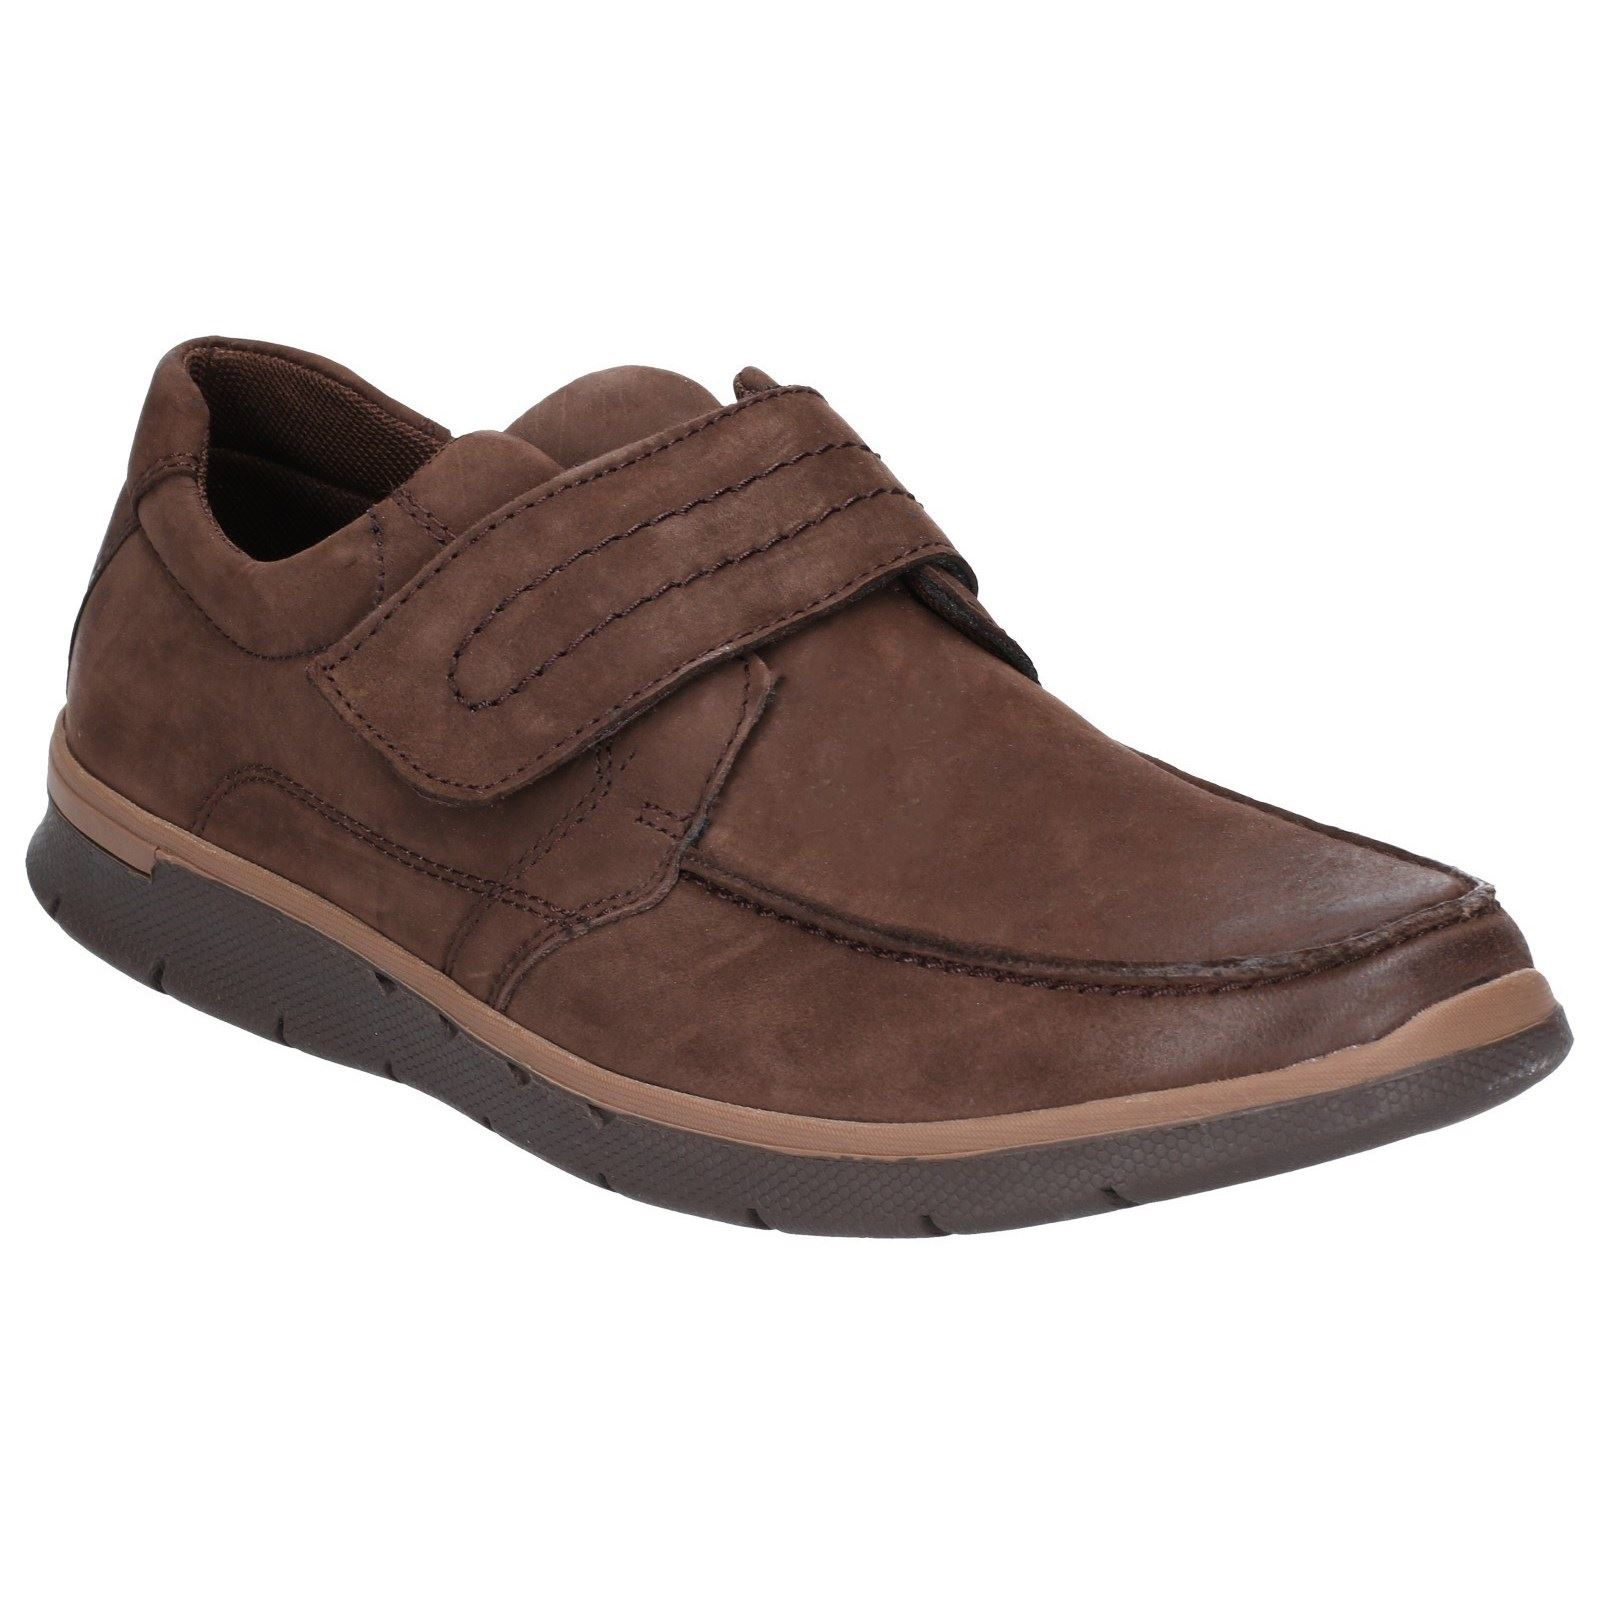 Hush Puppies Touch Fastening Mens Shoes